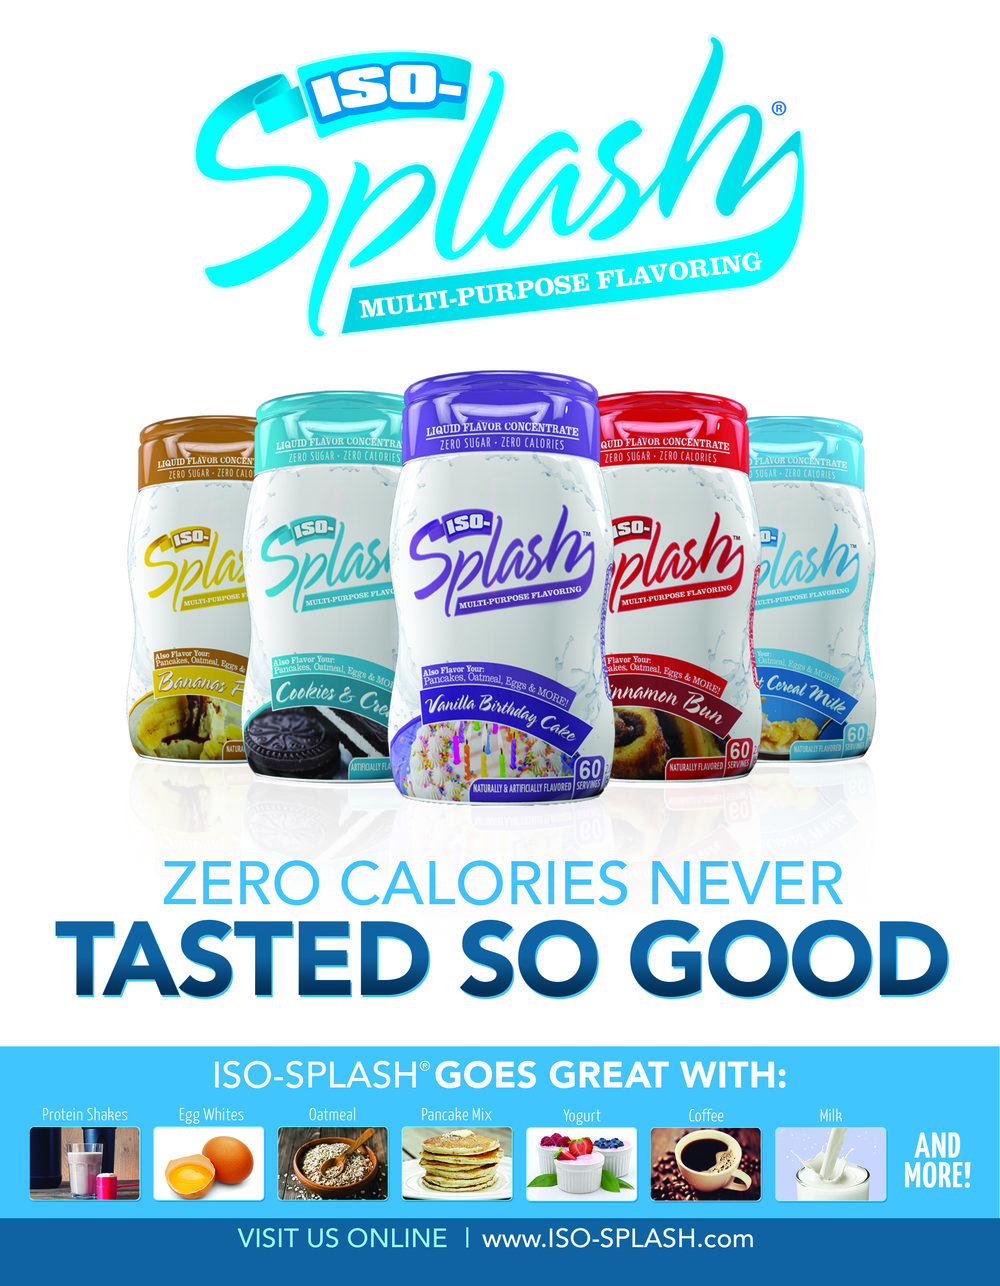 Iso Splash bottle images on website advert